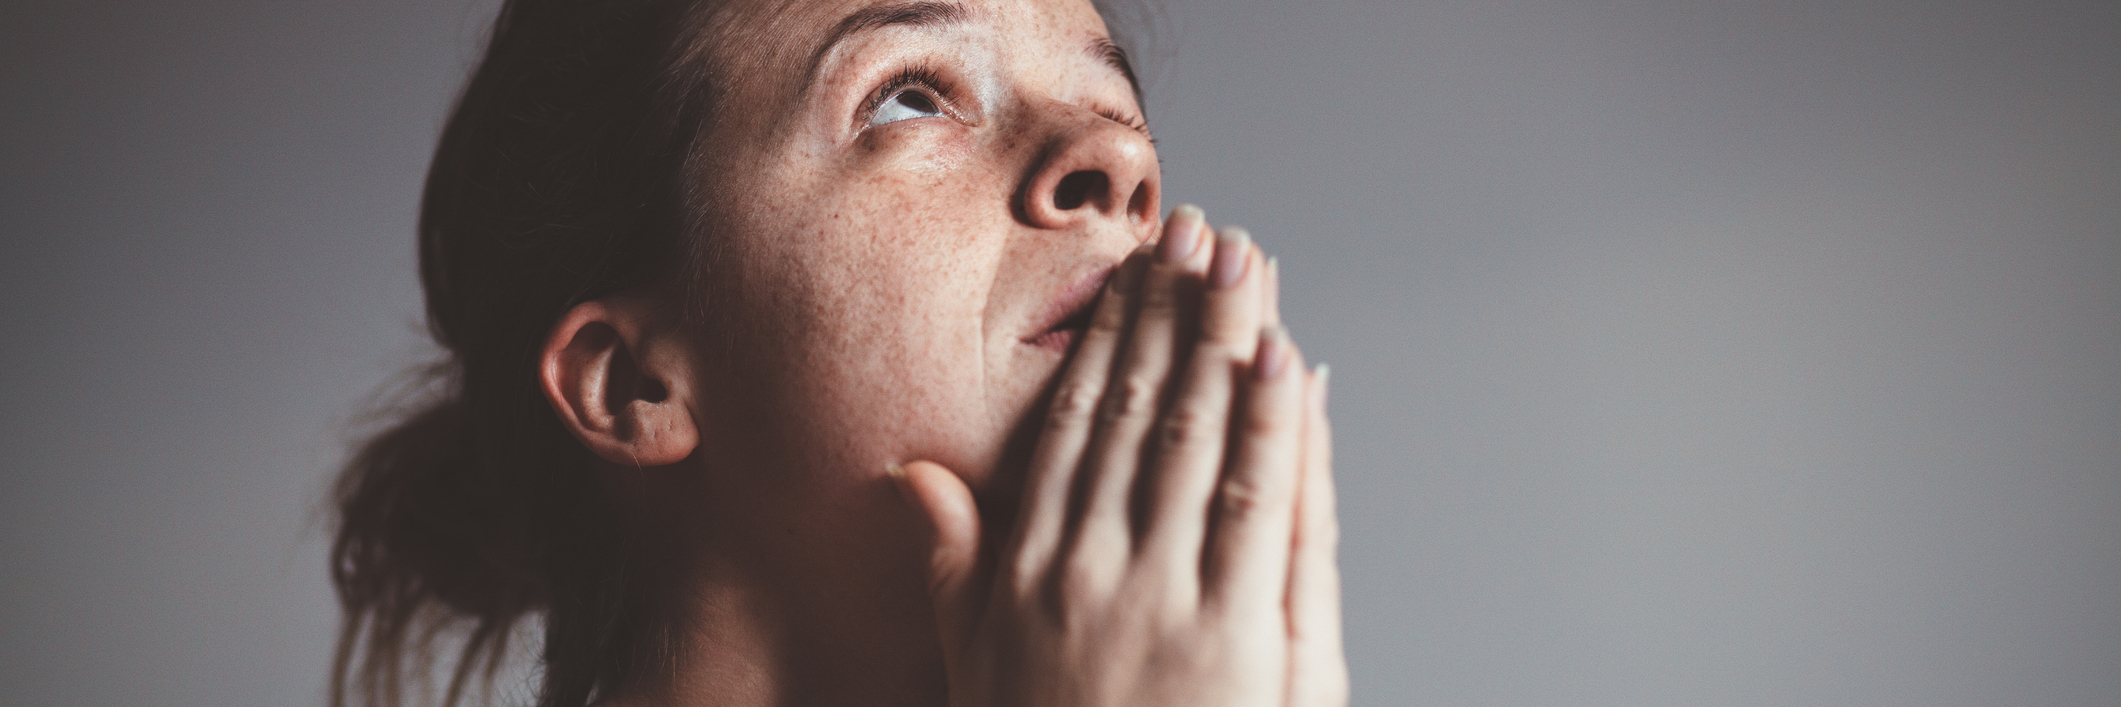 upset woman with tears in eyes and praying against gray background